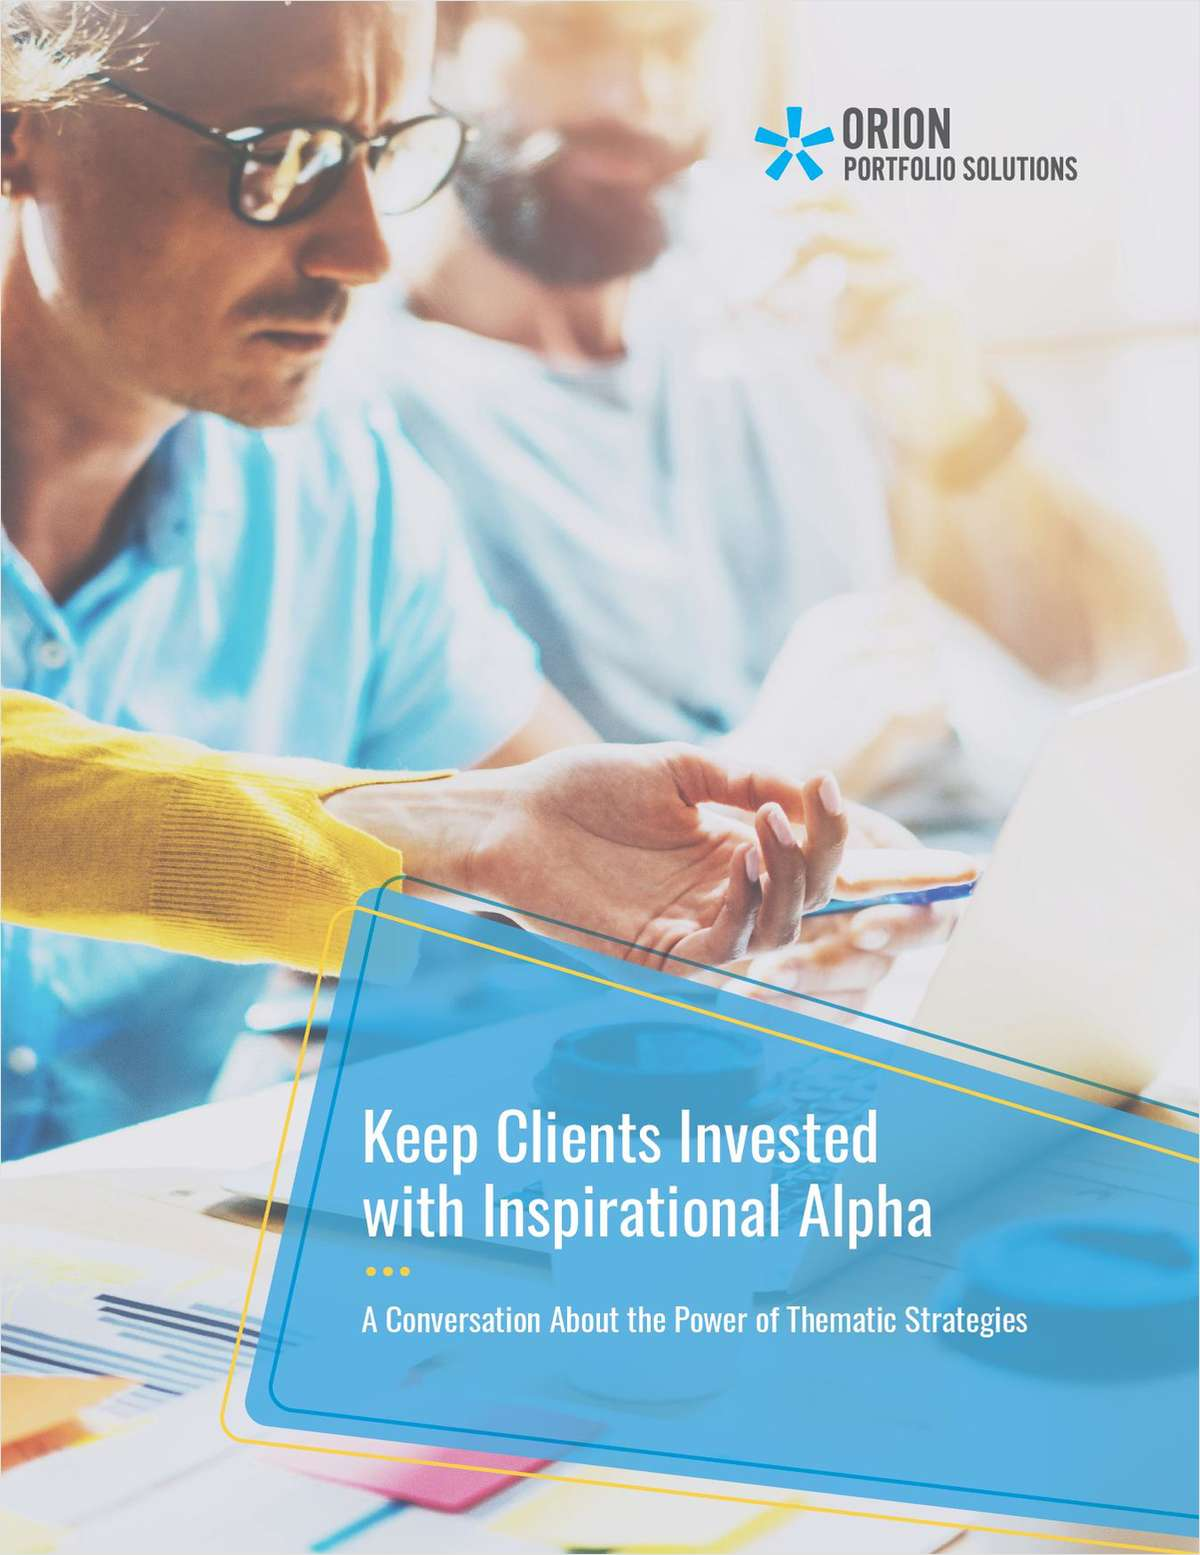 eBook: Keep Clients Invested with Inspirational Alpha